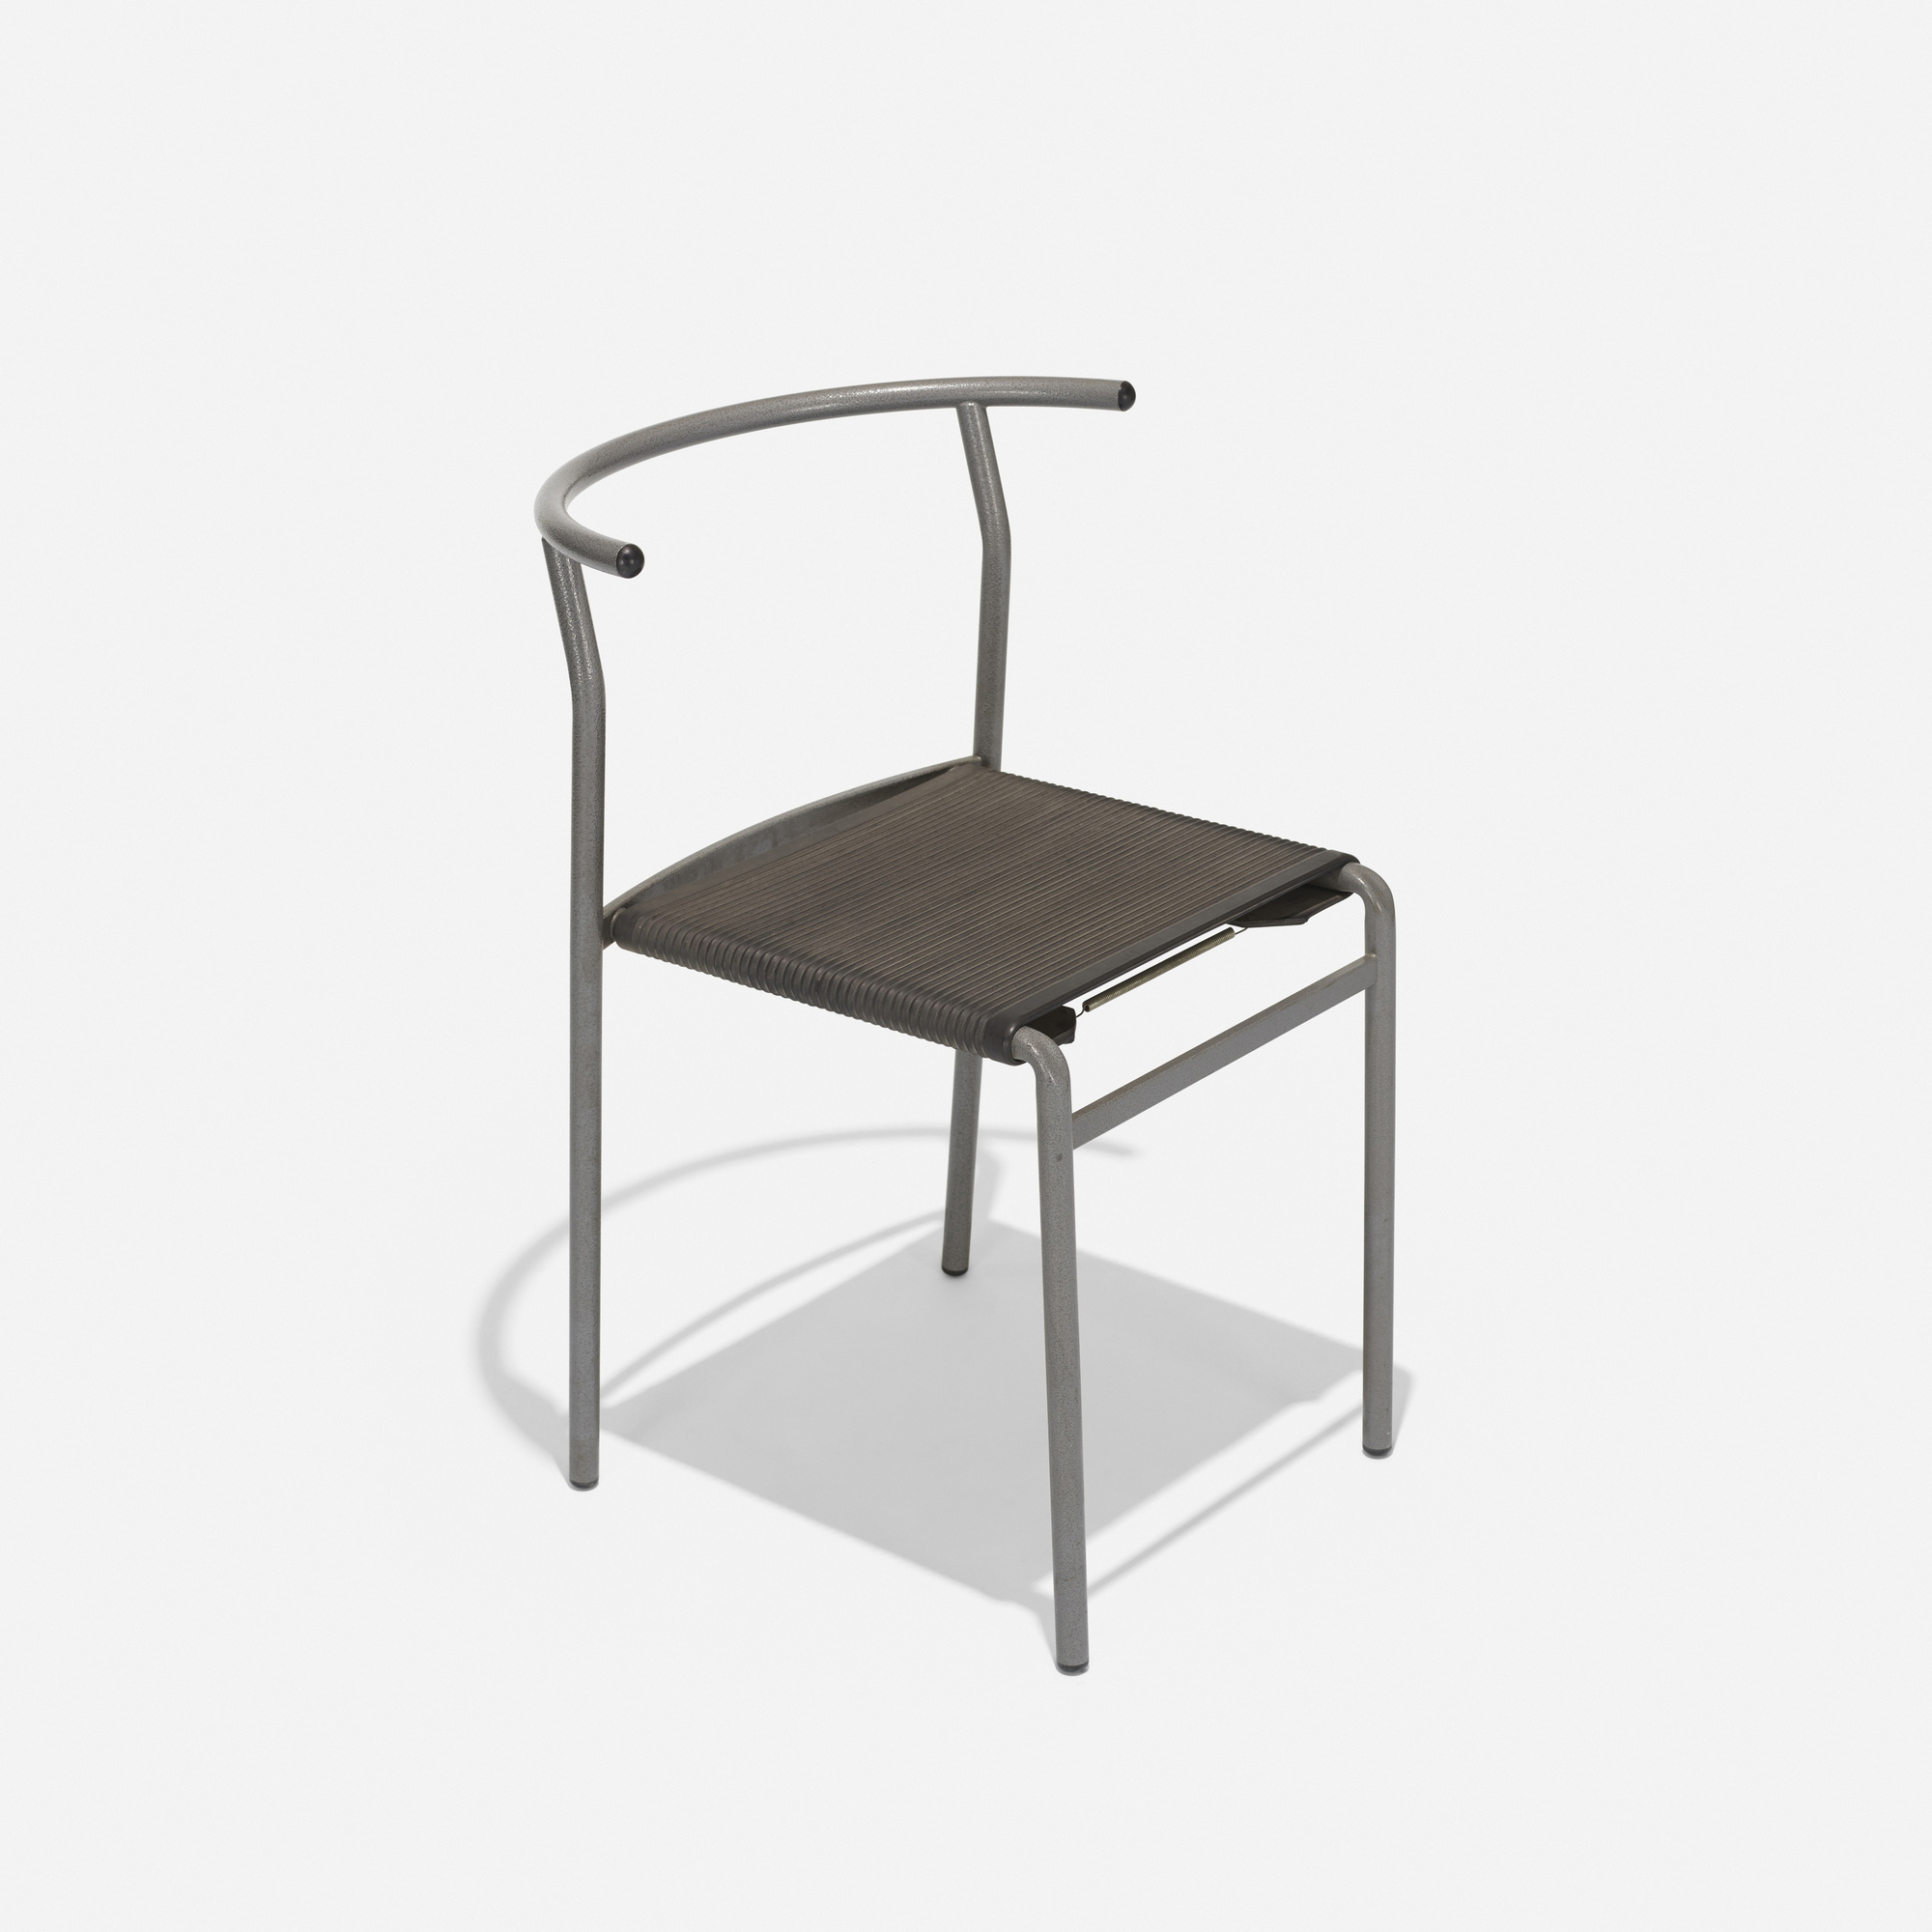 421: Philippe Starck / Café chair (1 of 5)